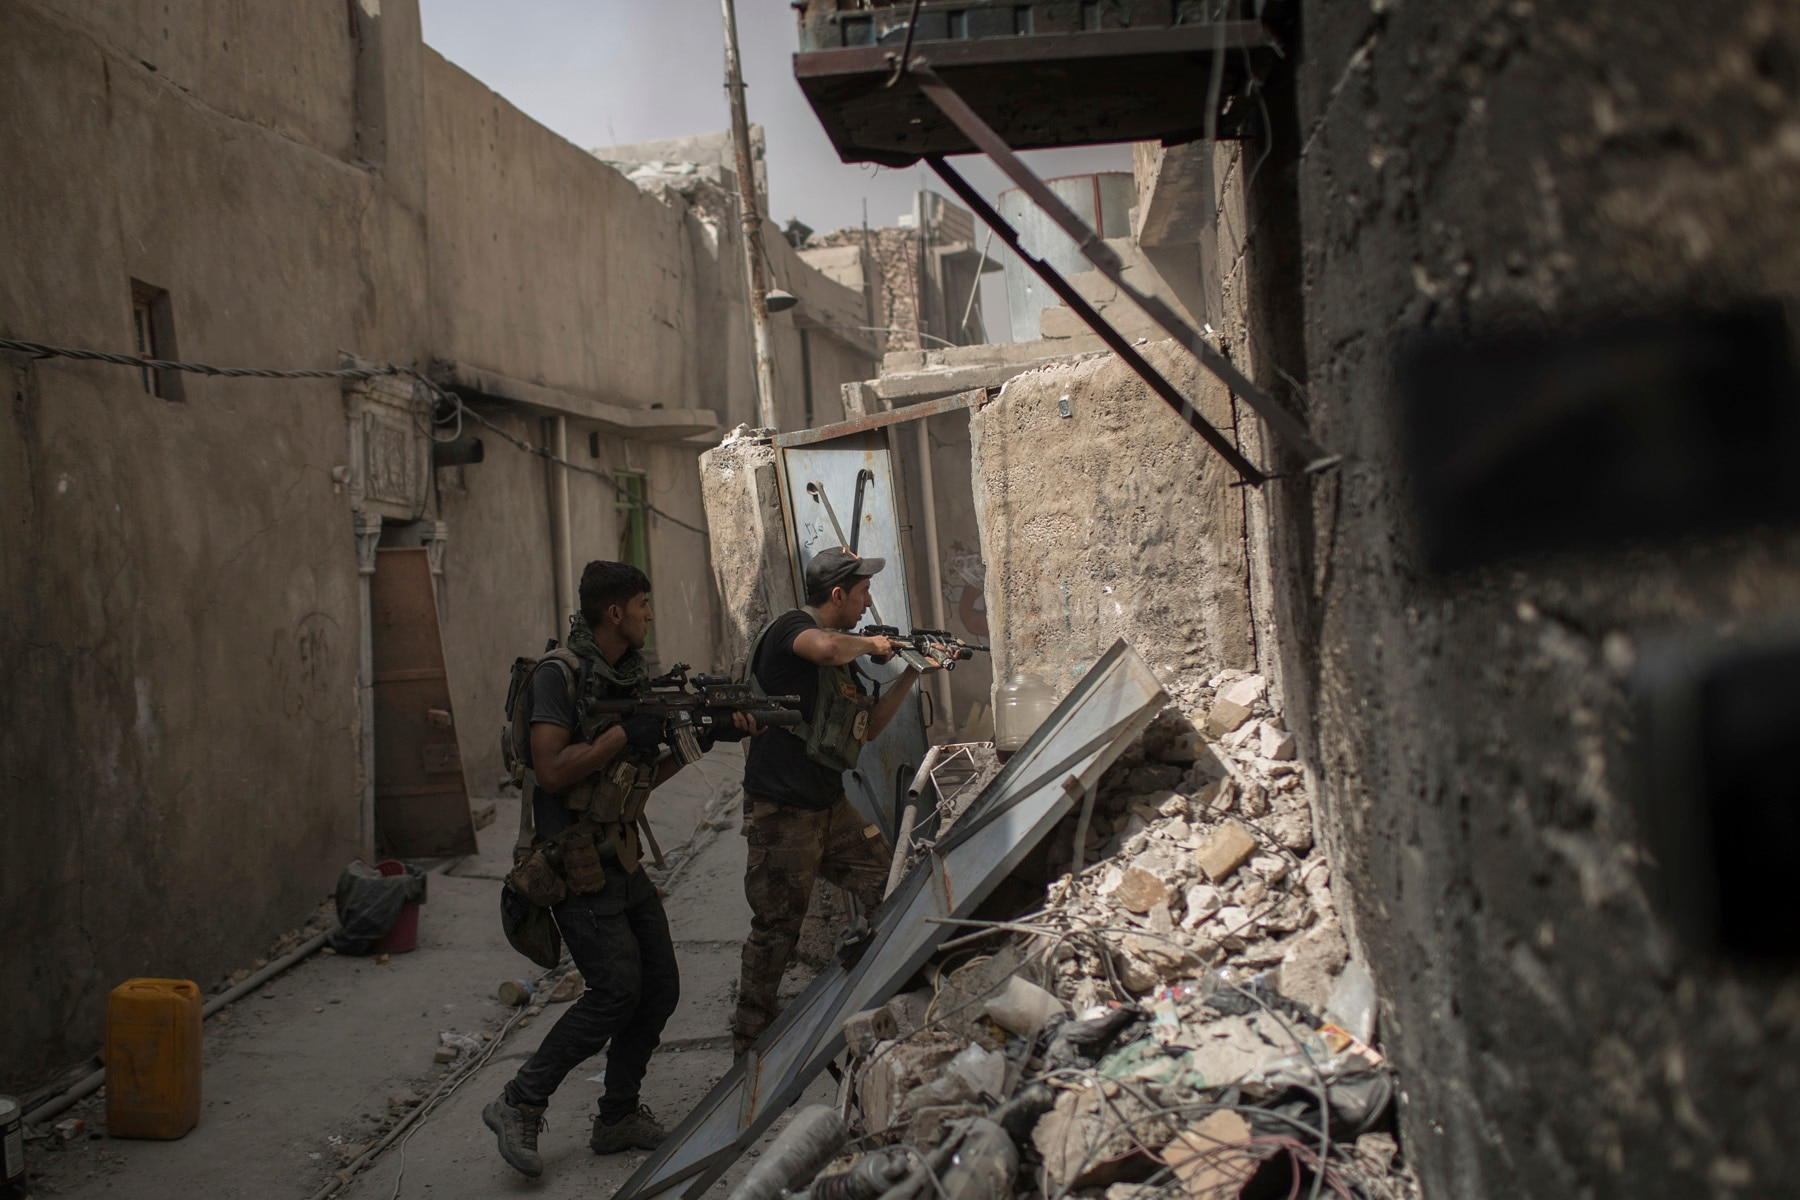 Iraqi Forces Said To Capture More Neighborhoods In Mosul's Old City